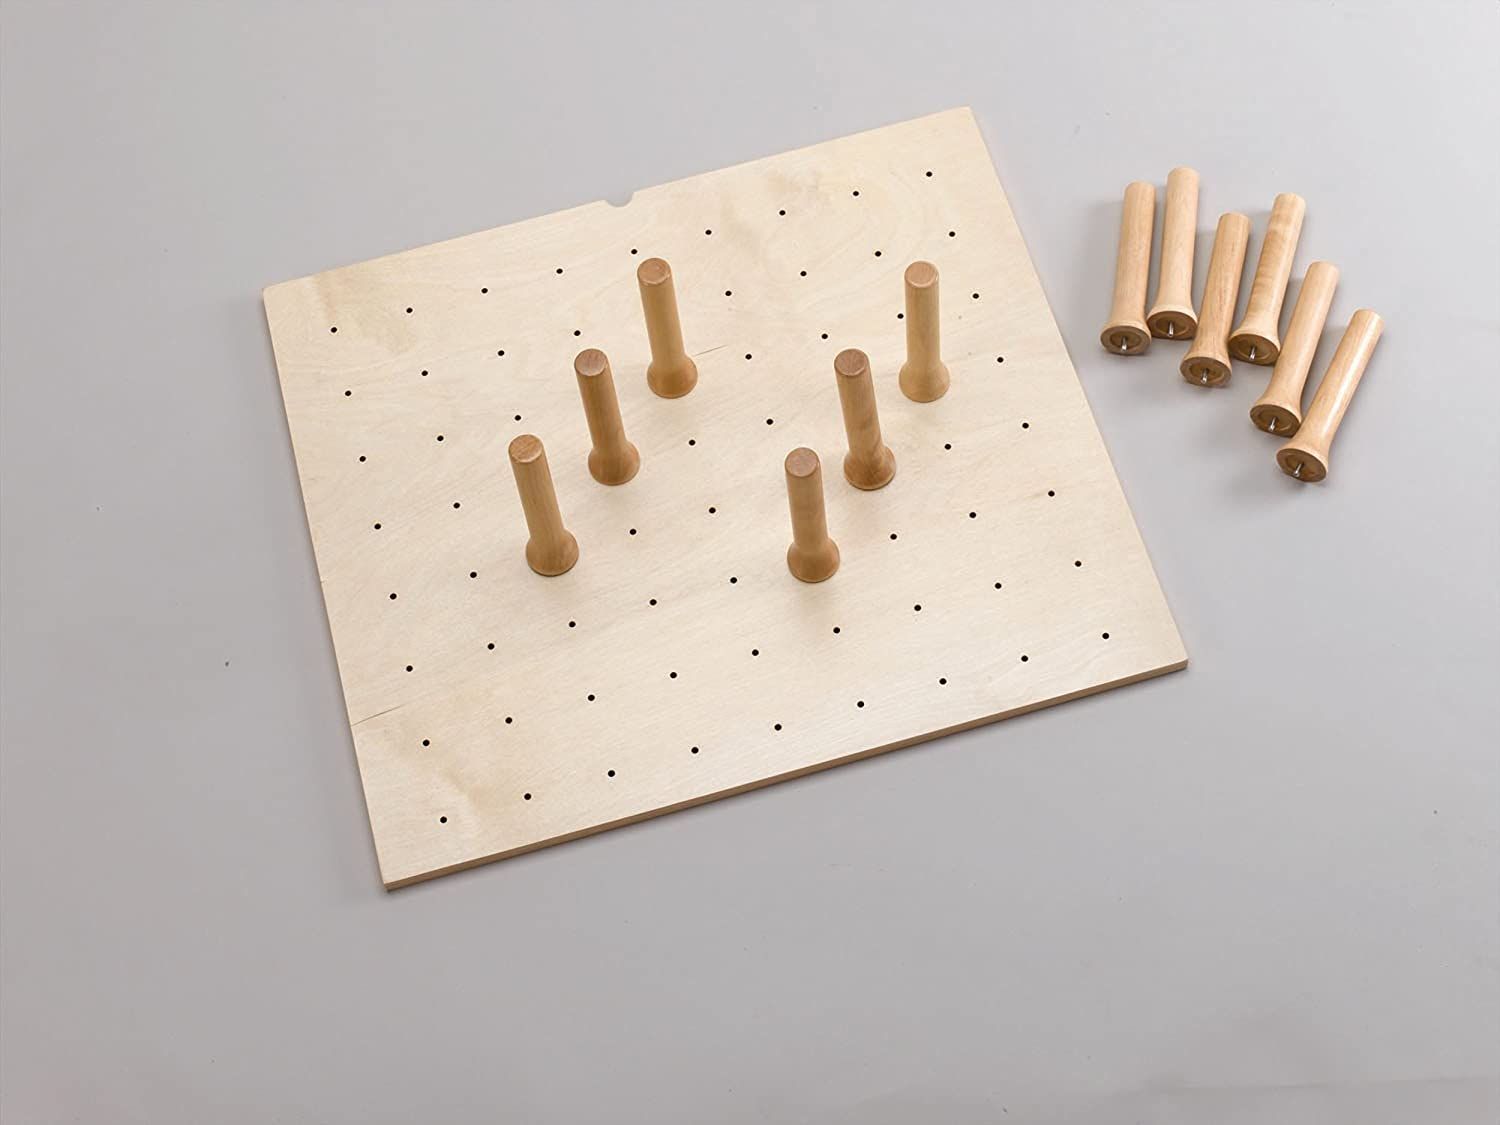 Good Amazon.com: Rev A Shelf 4DPS 2421   Small Cabinet Drawer Peg System Insert  With Wood Pegs: Home U0026 Kitchen